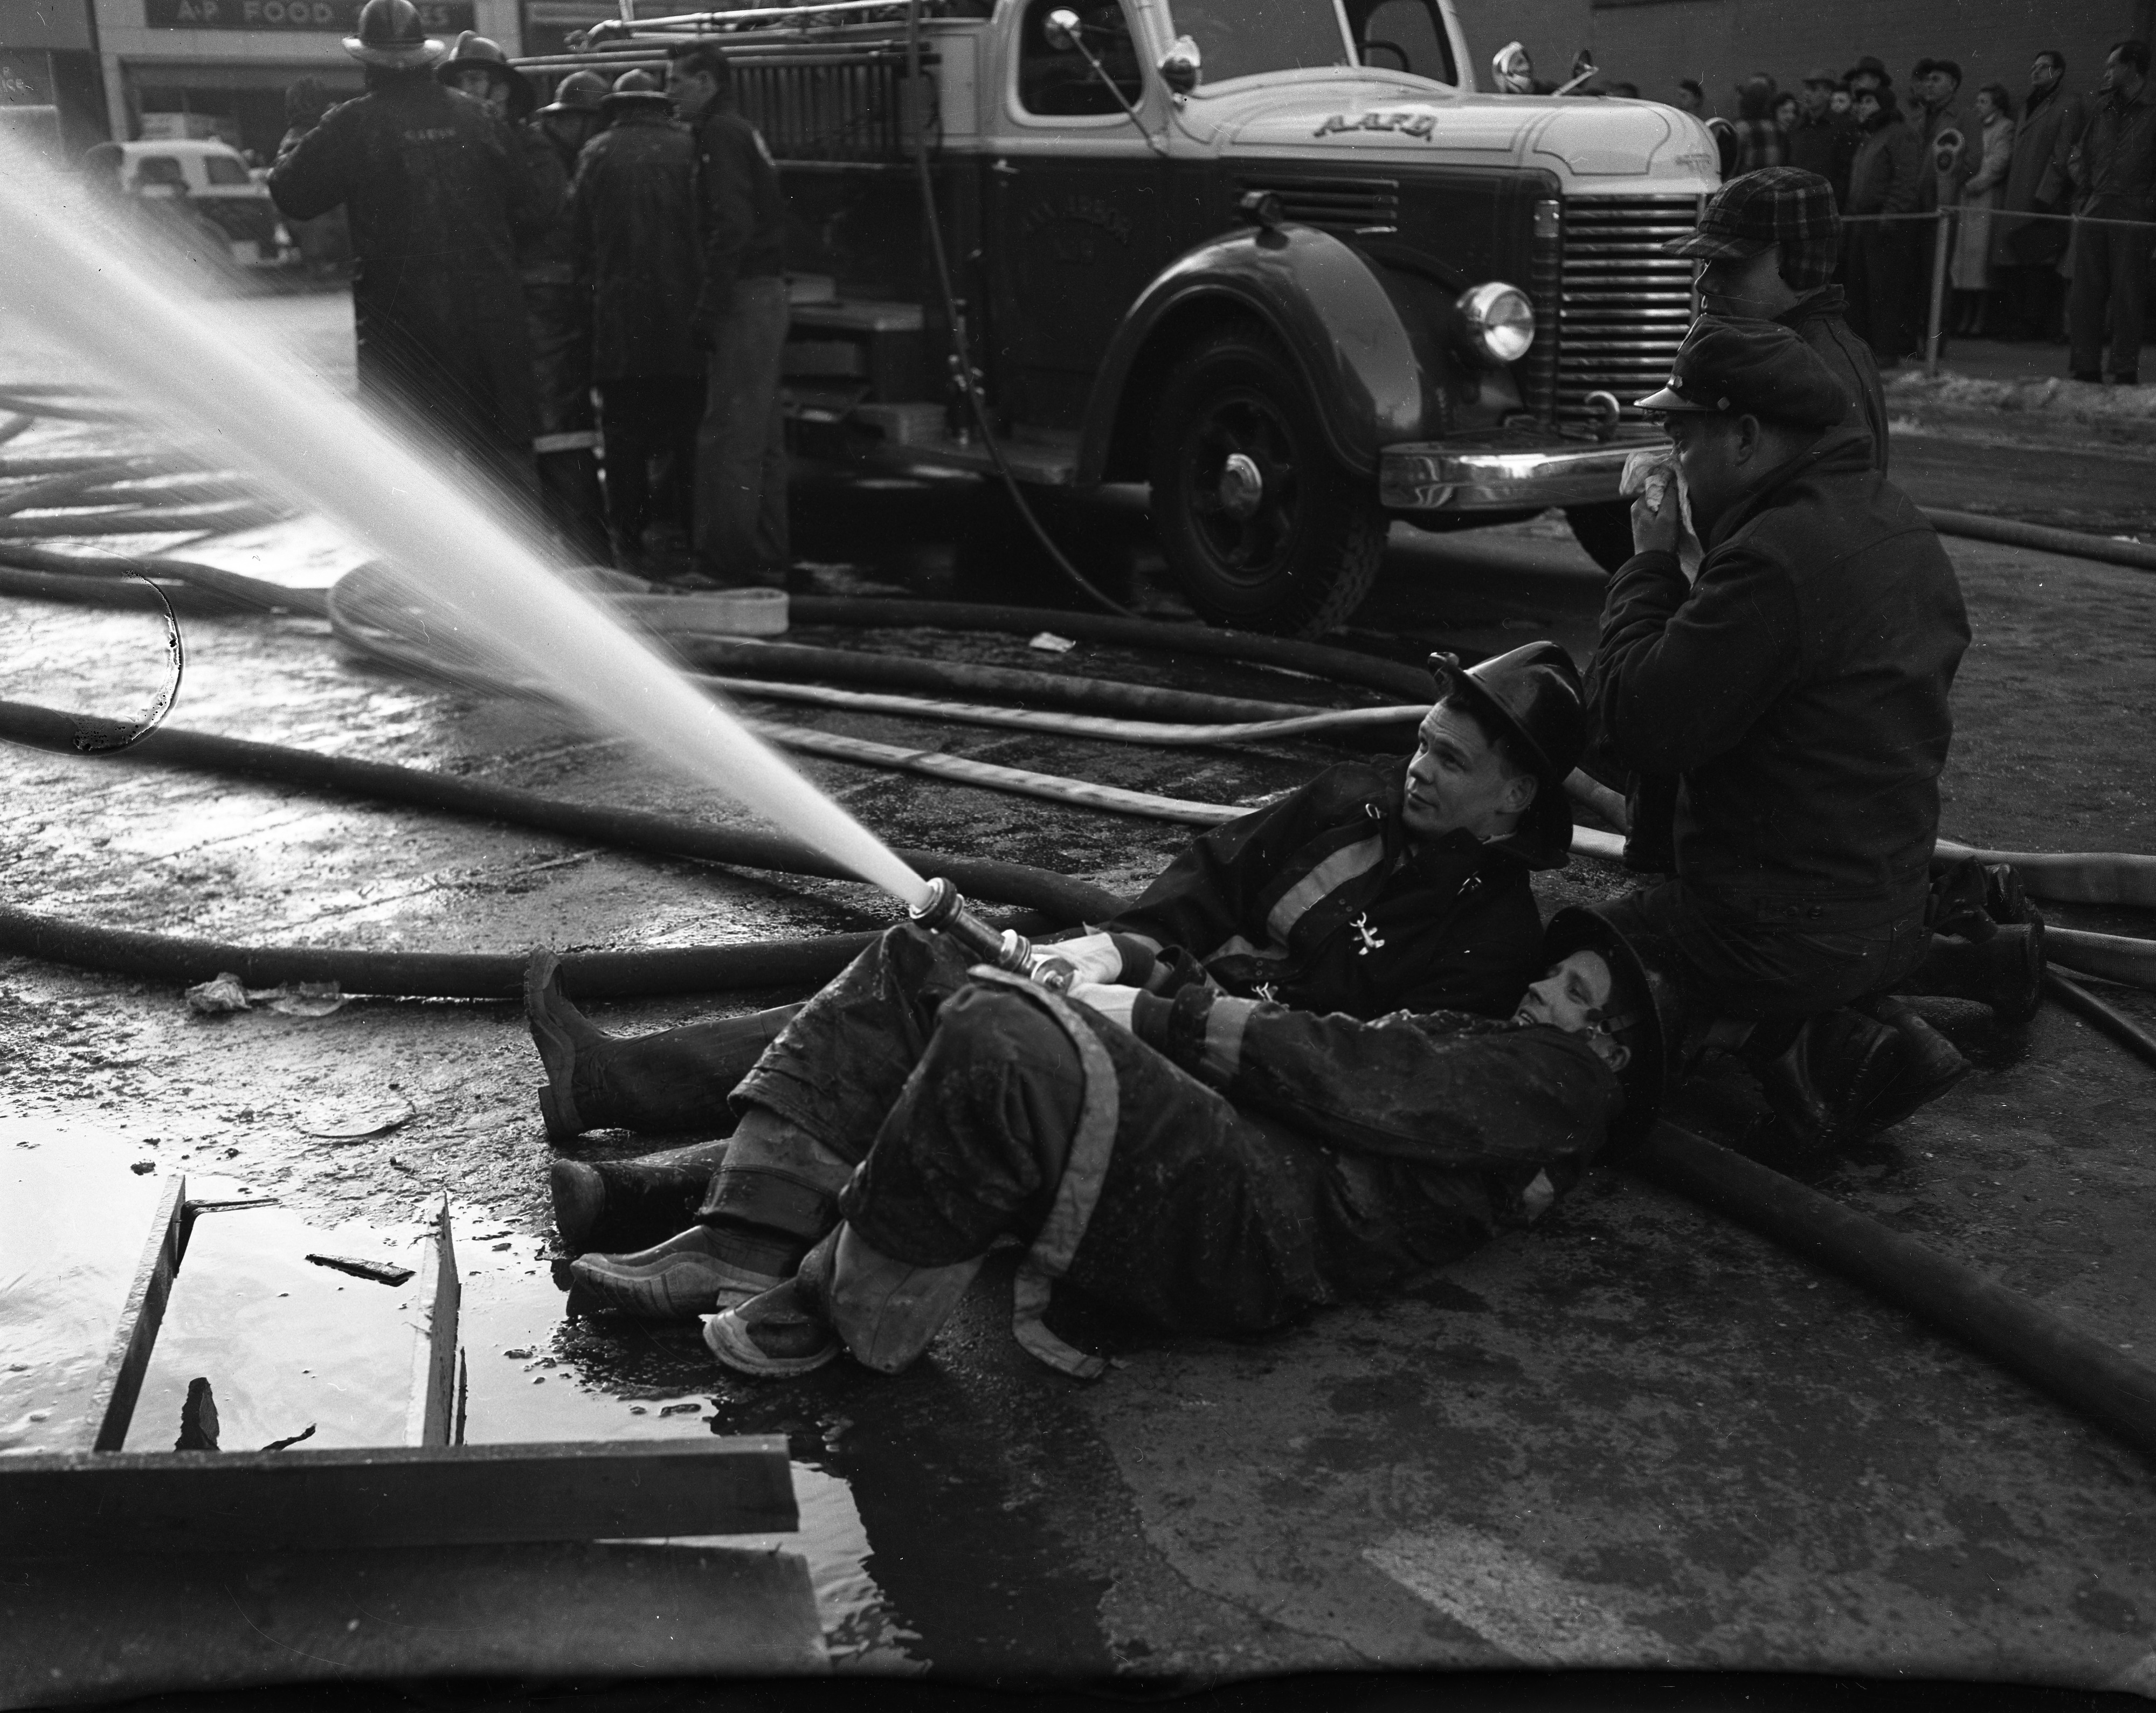 Ann Arbor Firemen Train Hoses on Massive Fire at Campus Drug Store Building, February 1954 image